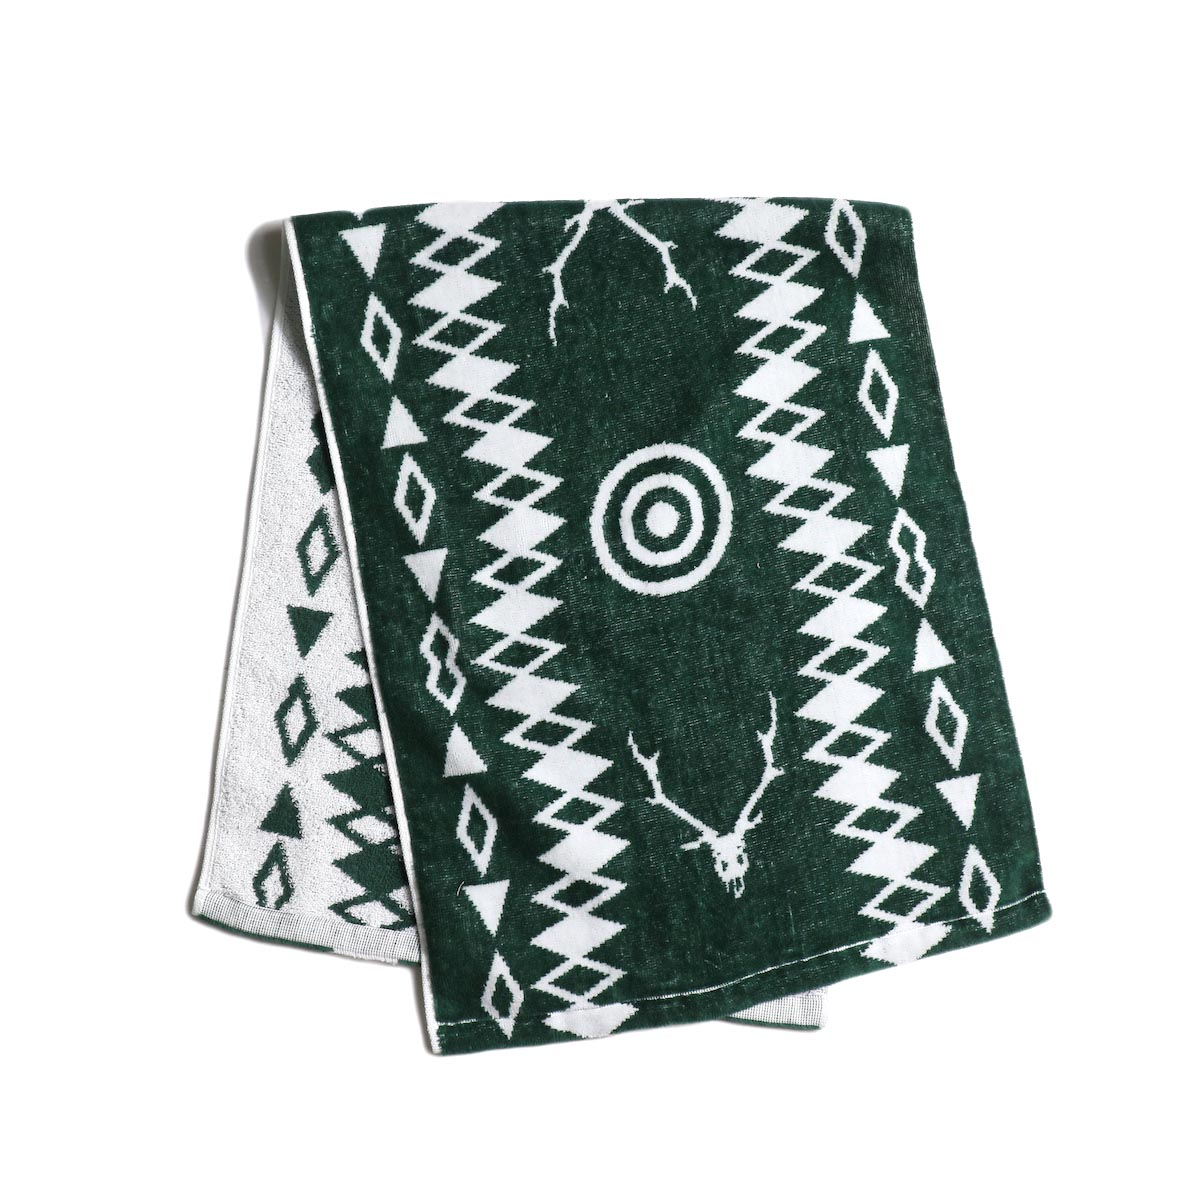 South2 West8 / Face Towel -Cotton Jacquard (Target & Skull)